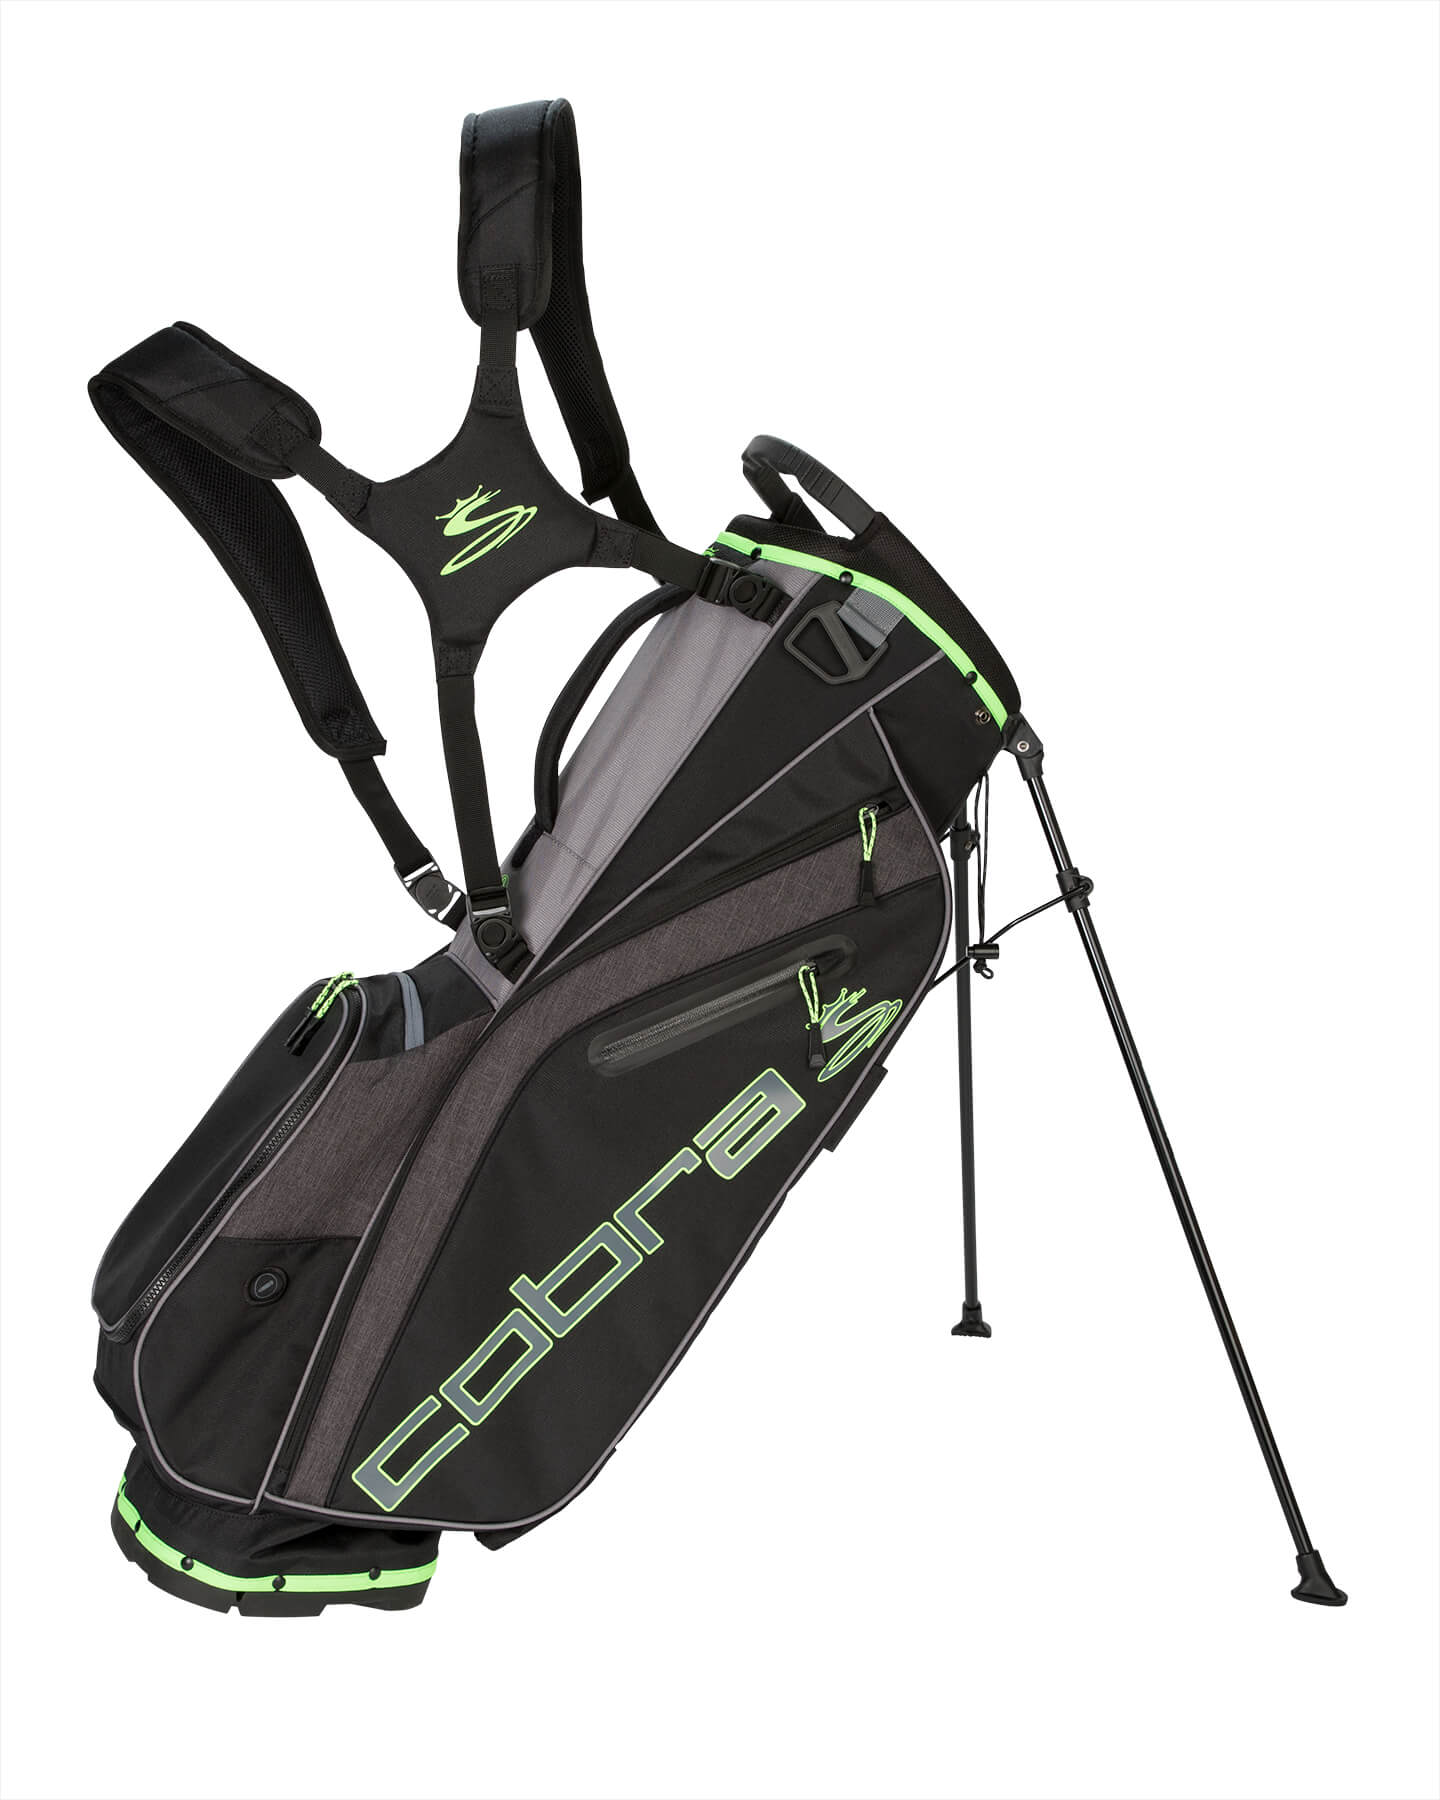 Cobra Golf Ultralight Stand Bag Carry 909312 5 Way Top